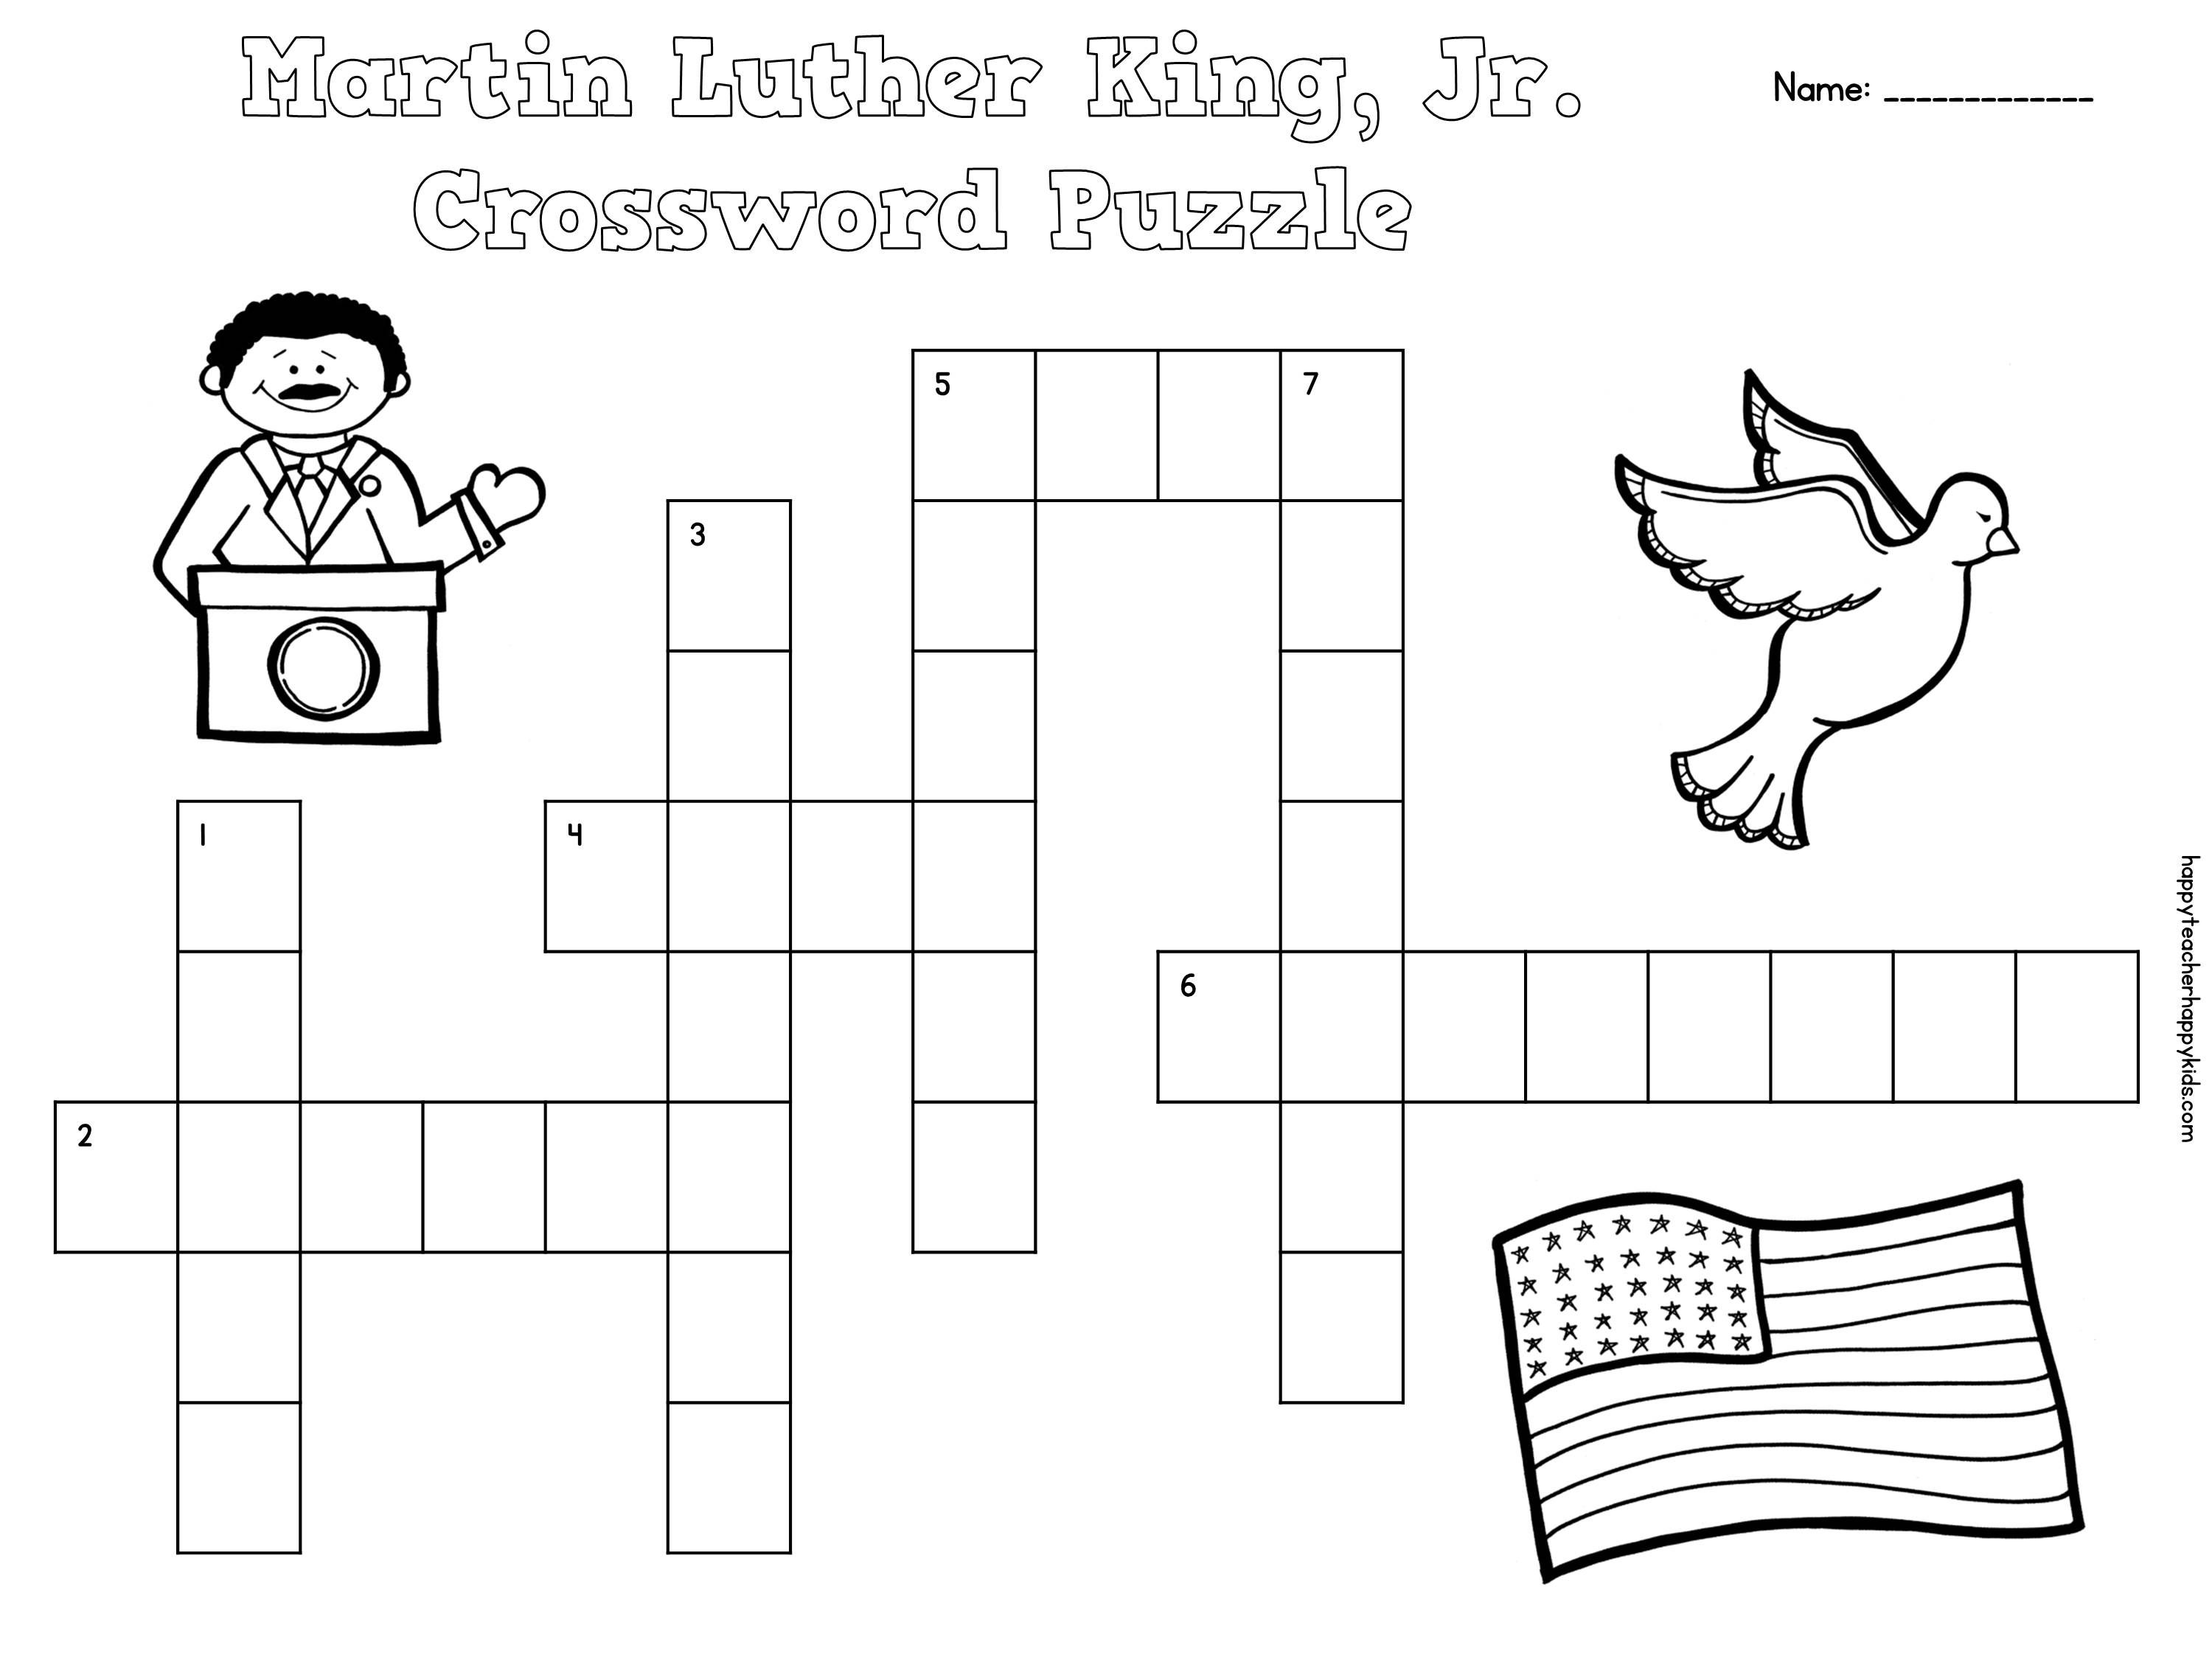 Free Martin Luther King Jr Crossword Puzzles For Primary Students Mlk